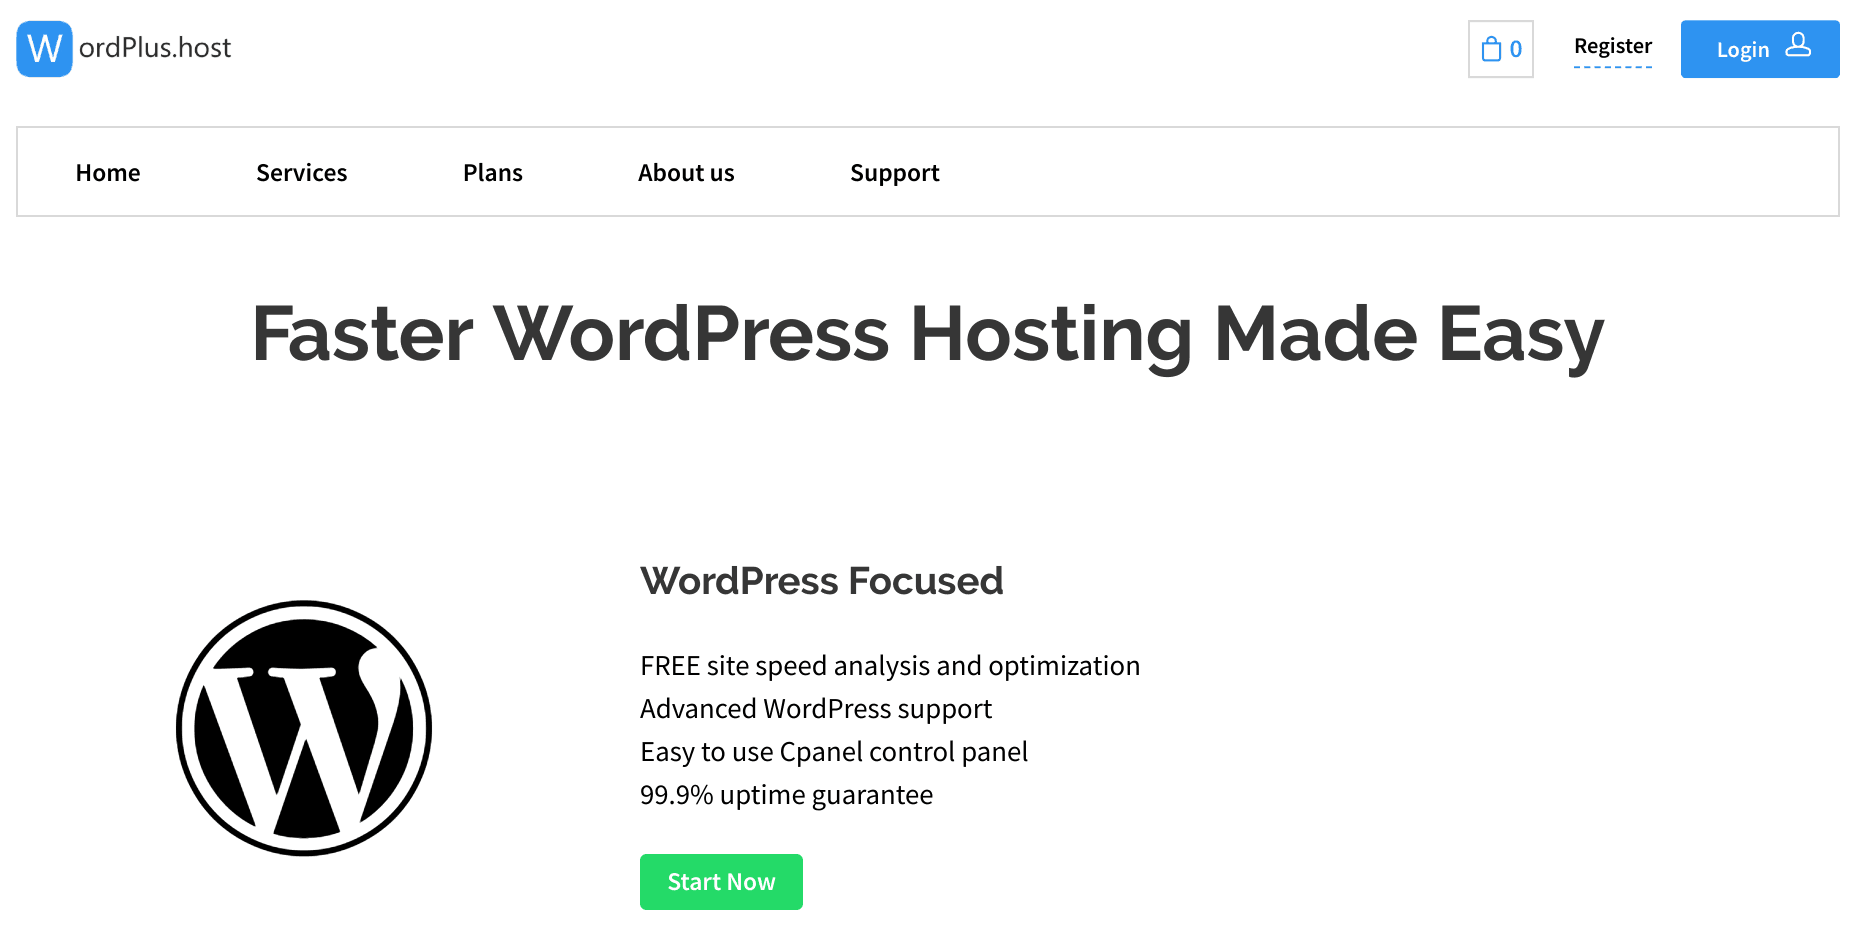 WordPlus.host